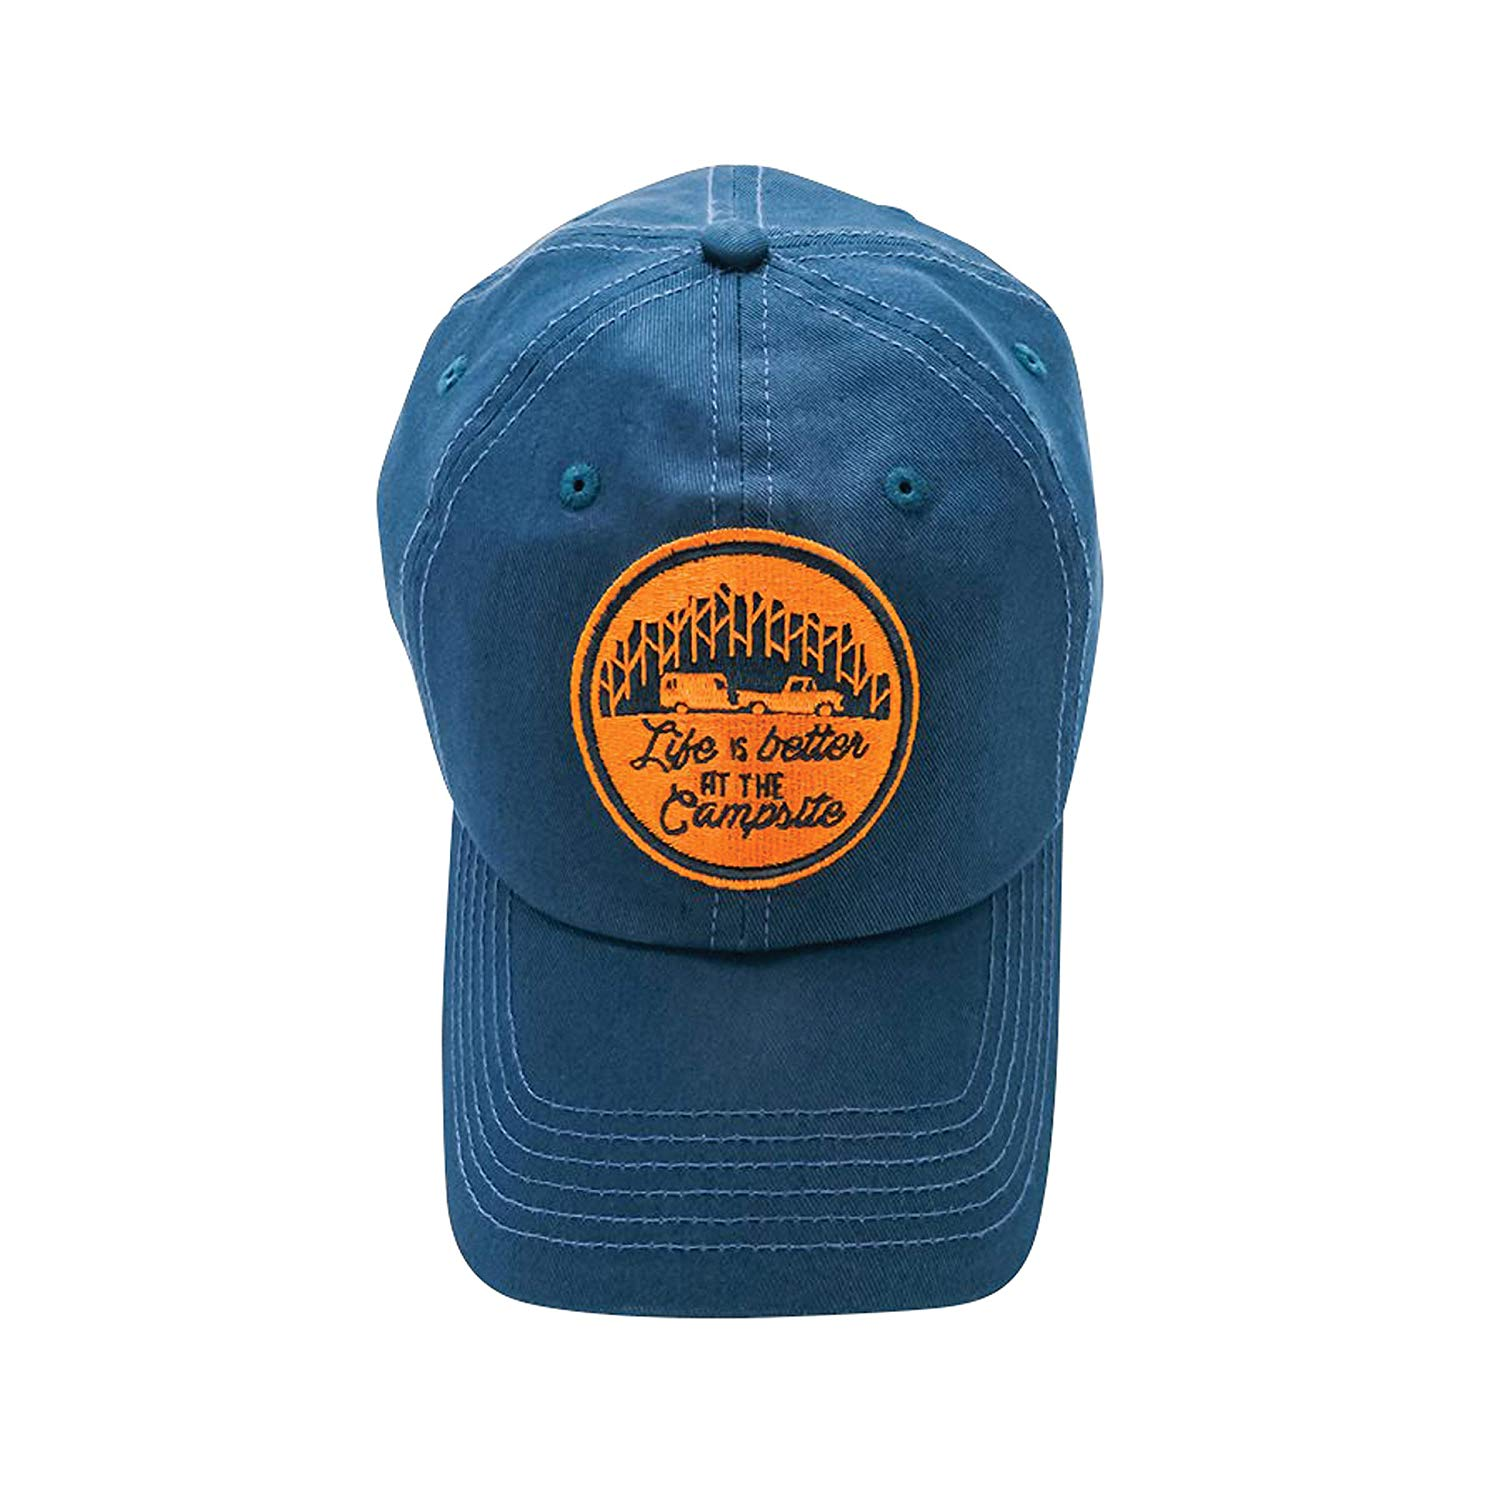 This camping hat will keep you looking great at the campsite.